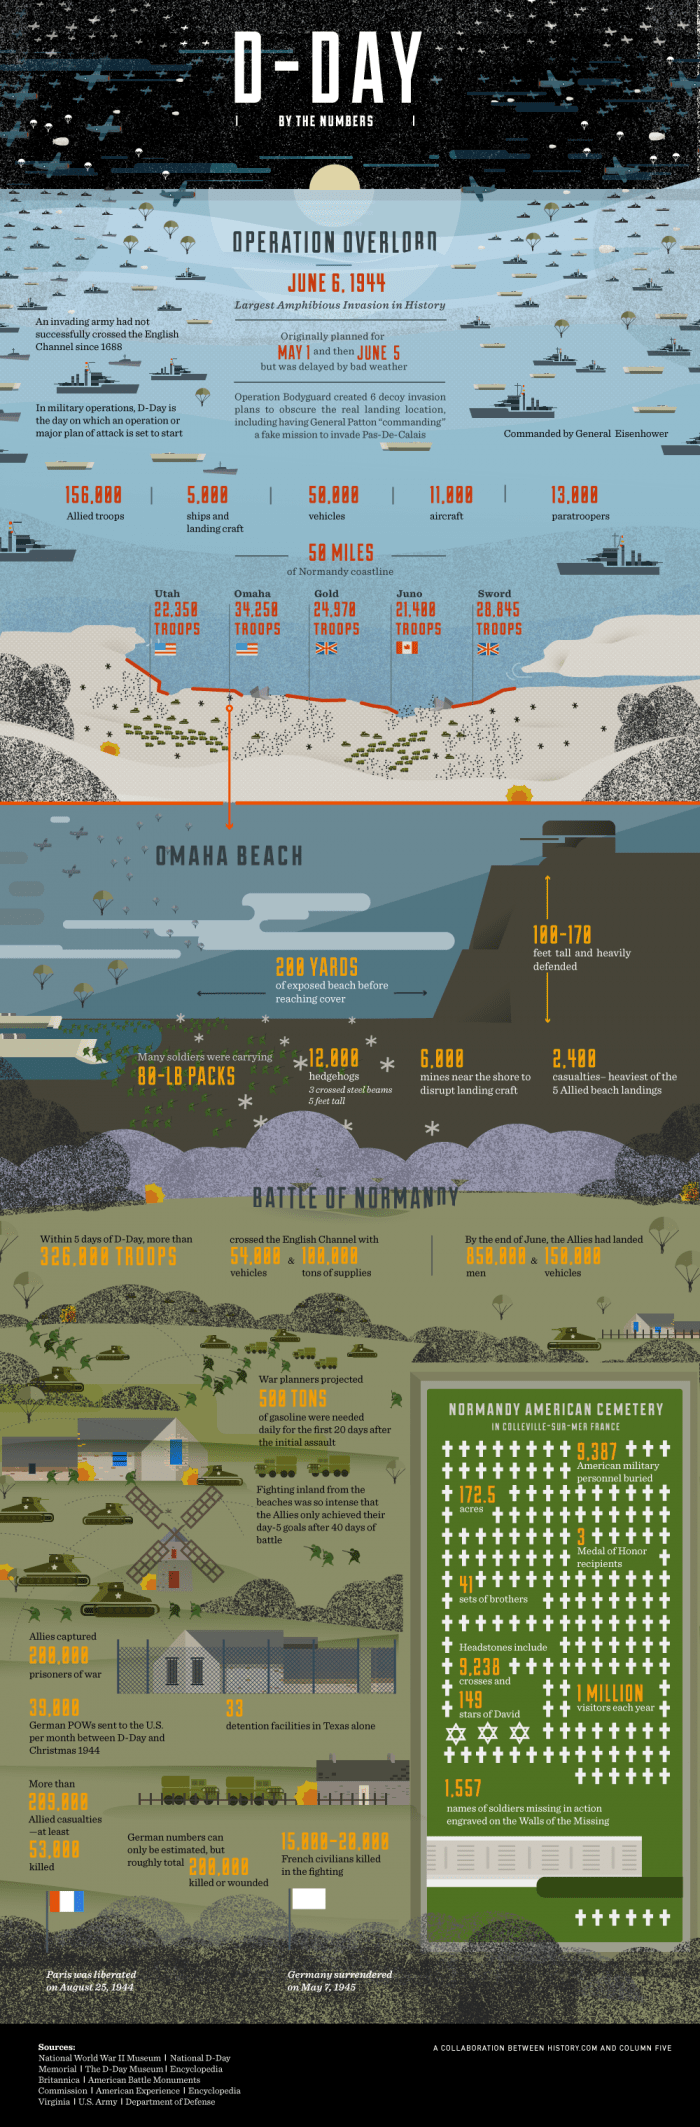 Everything you should know about D-Day by the numbers